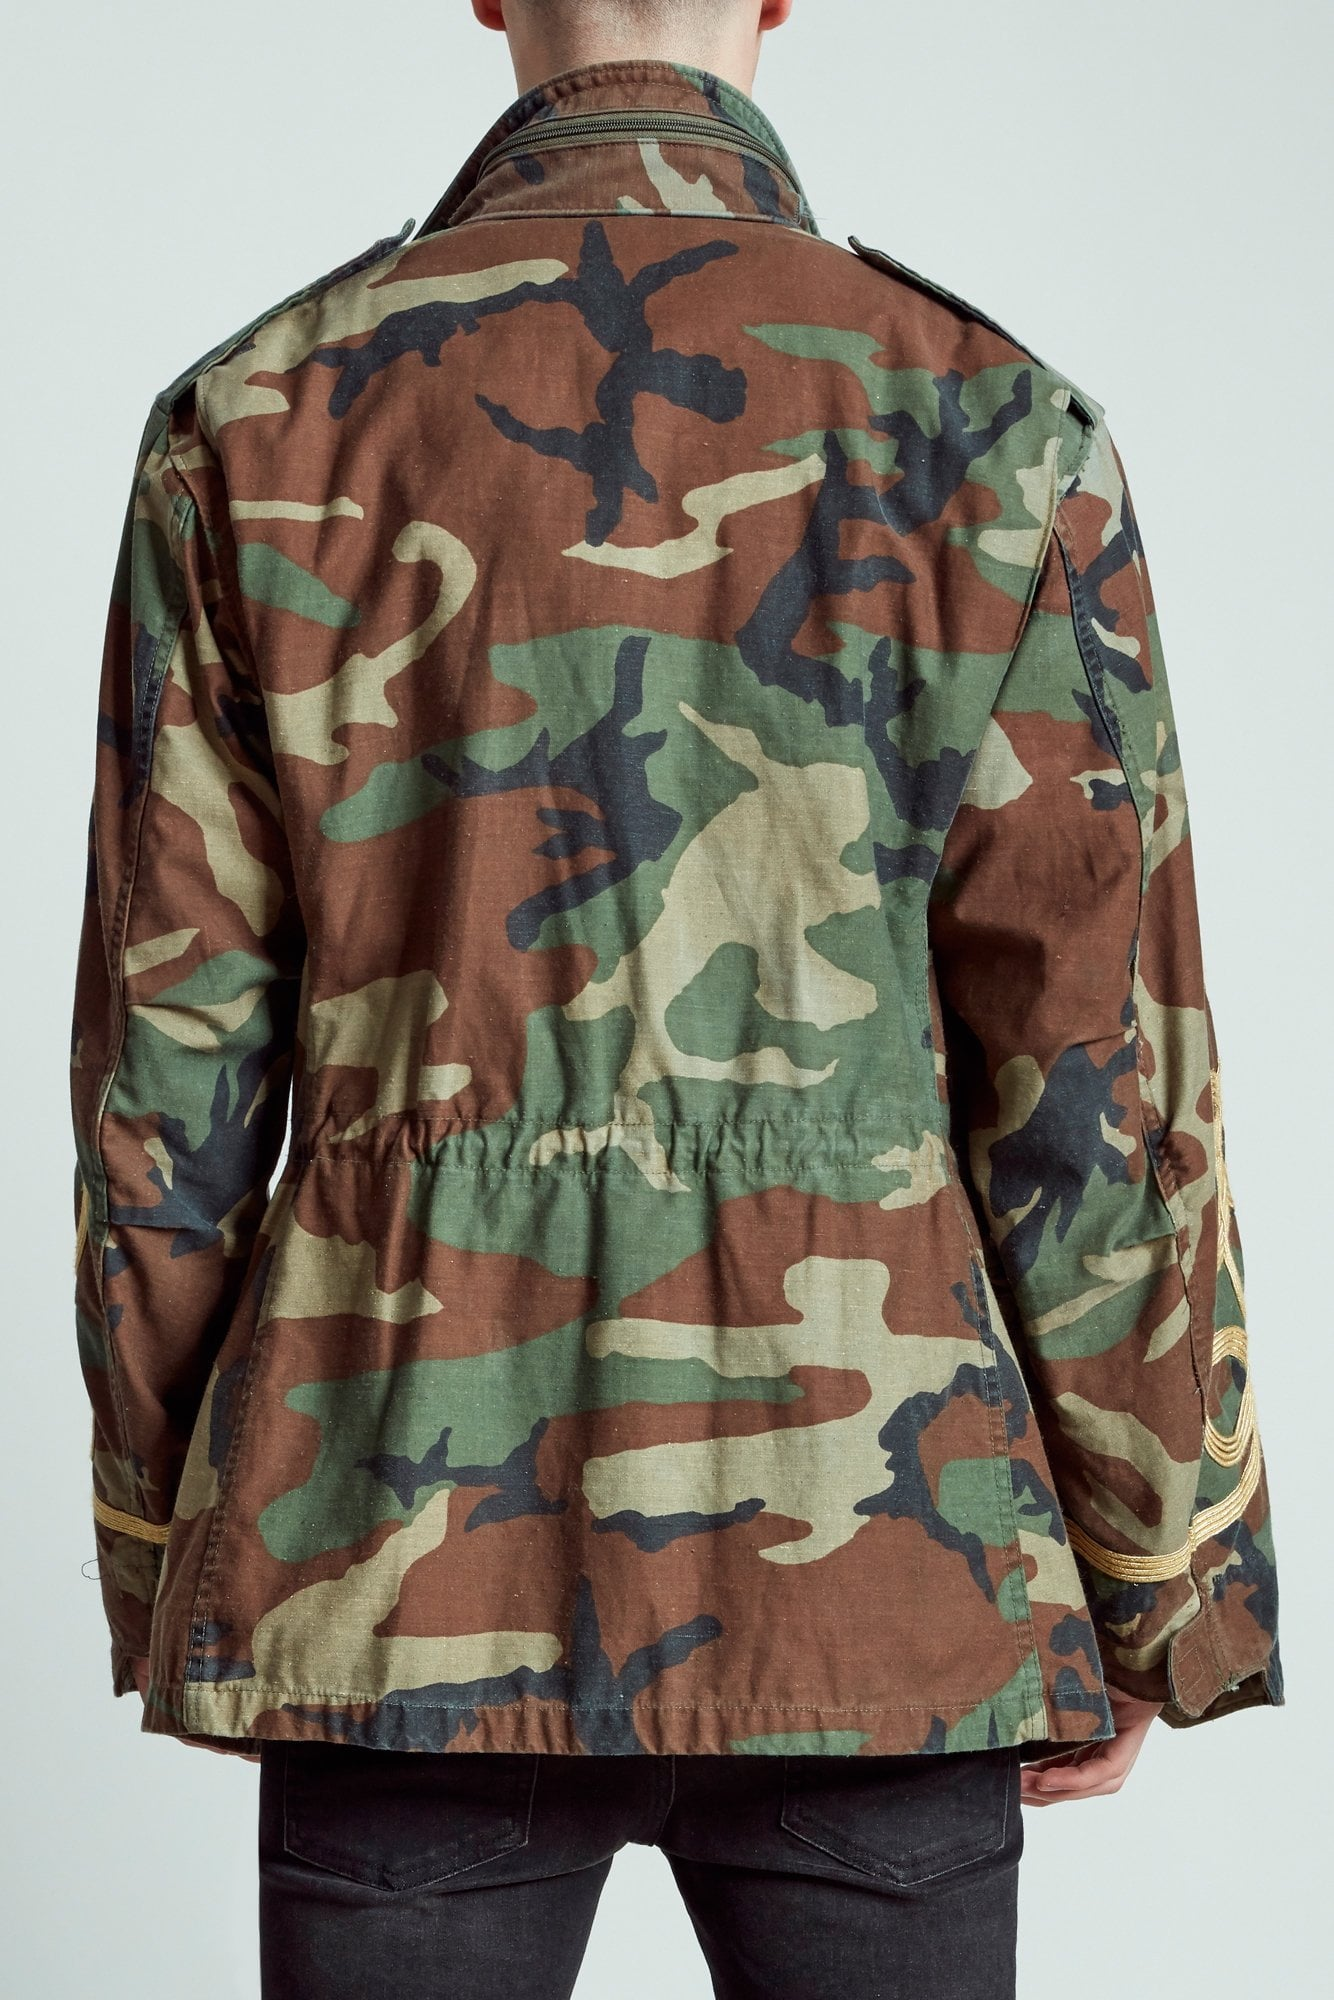 M65 Jacket- Camo with Embroidery